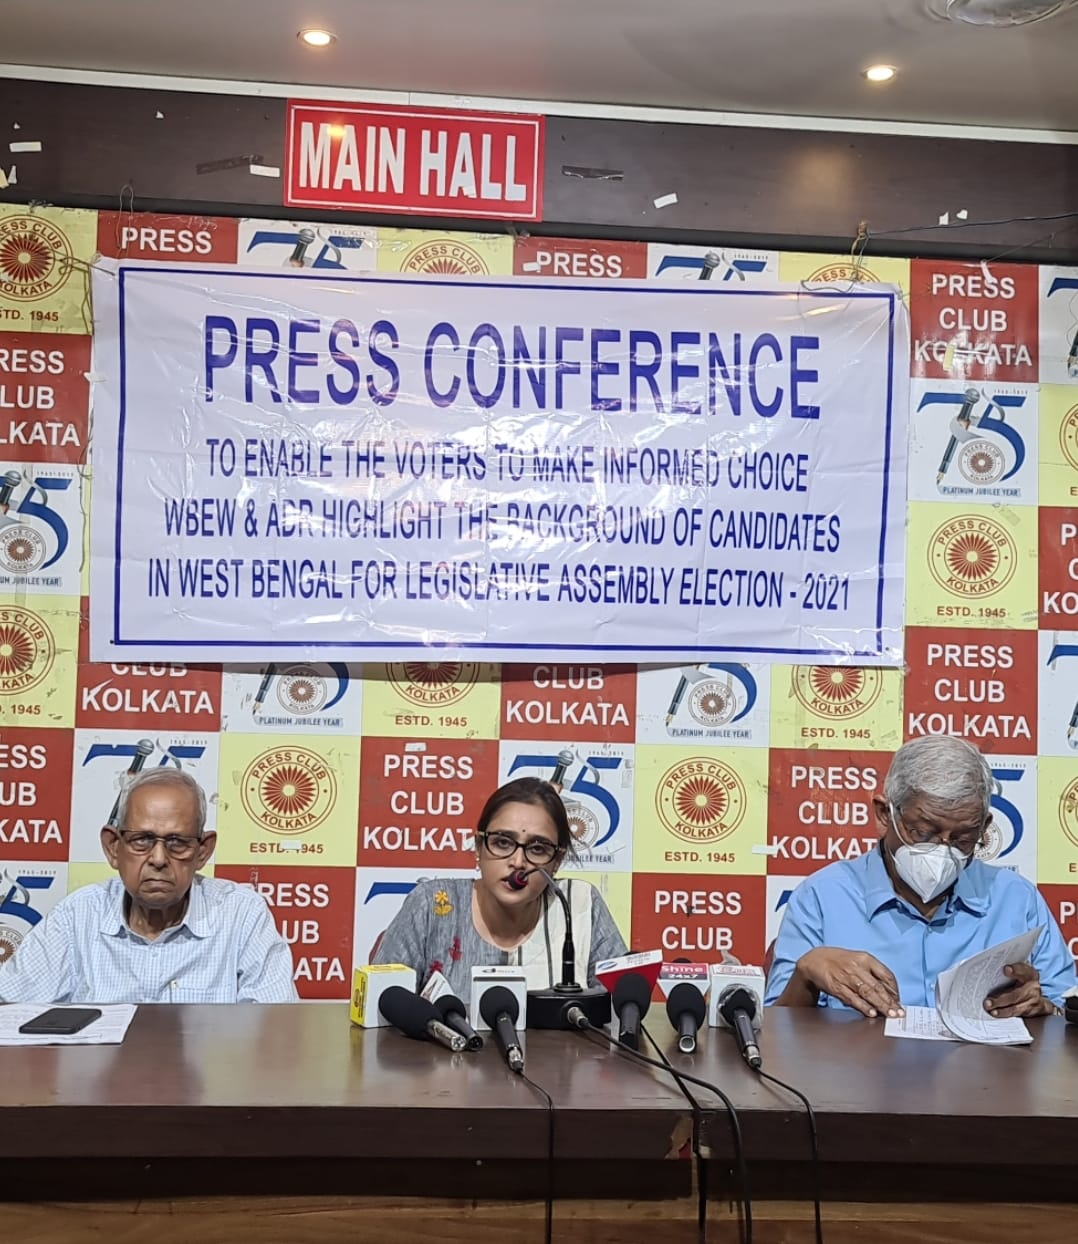 Bengal Phase IV polls: 19 Candidates Have Declare Crime Against Women